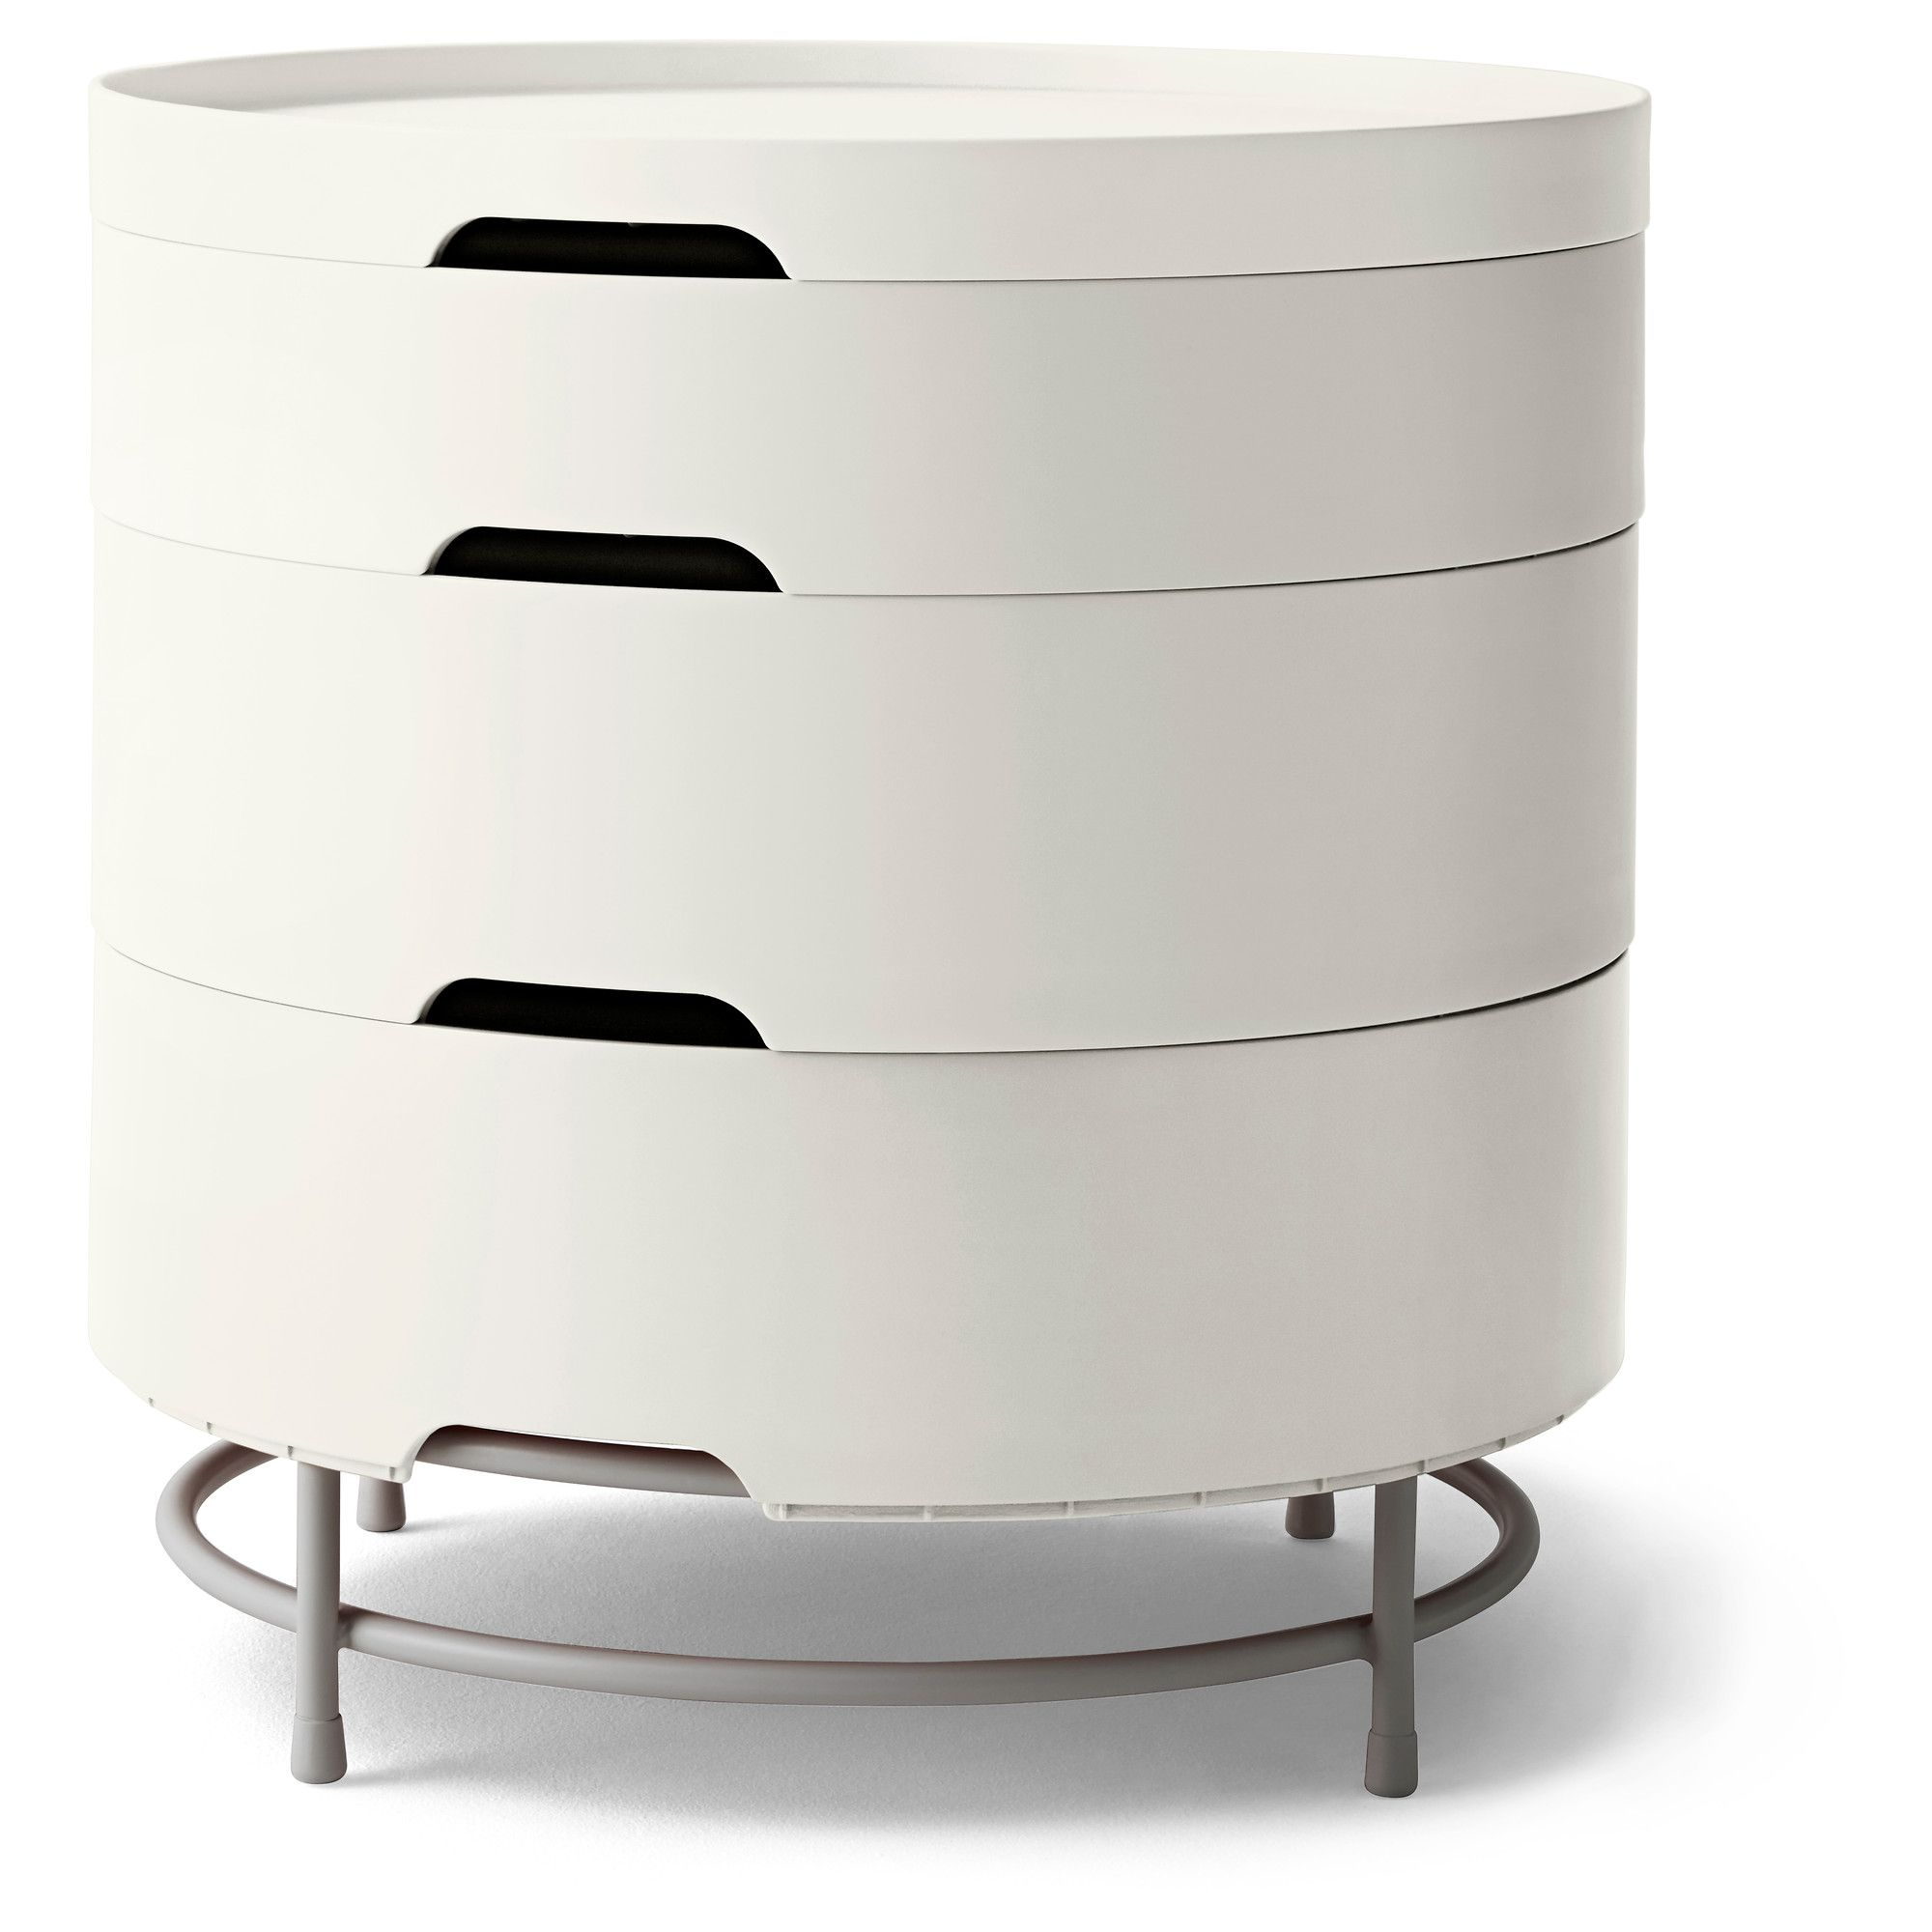 Ikea Ps 2017 Storage Table White Bedside